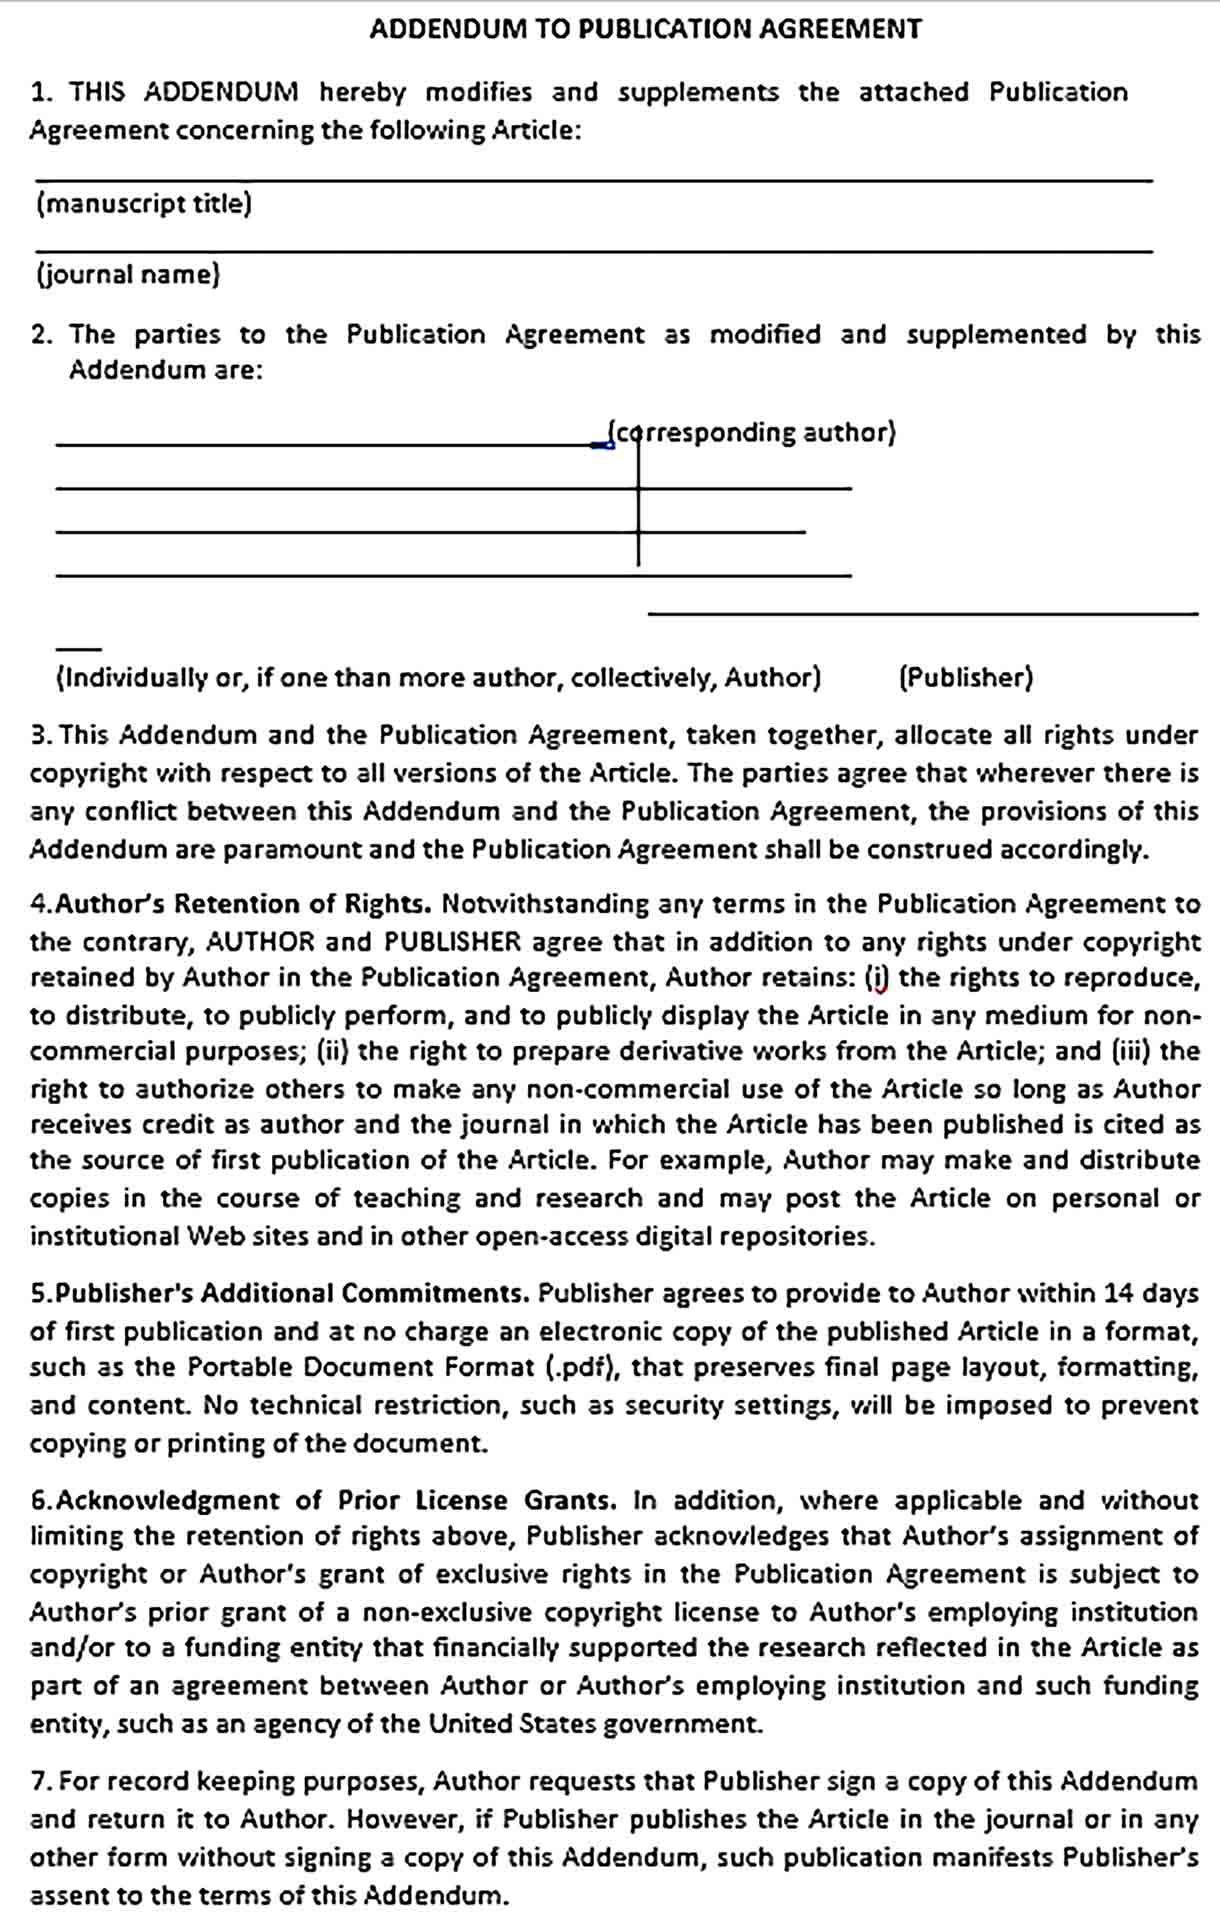 Sample Addendum to Publication Agreement